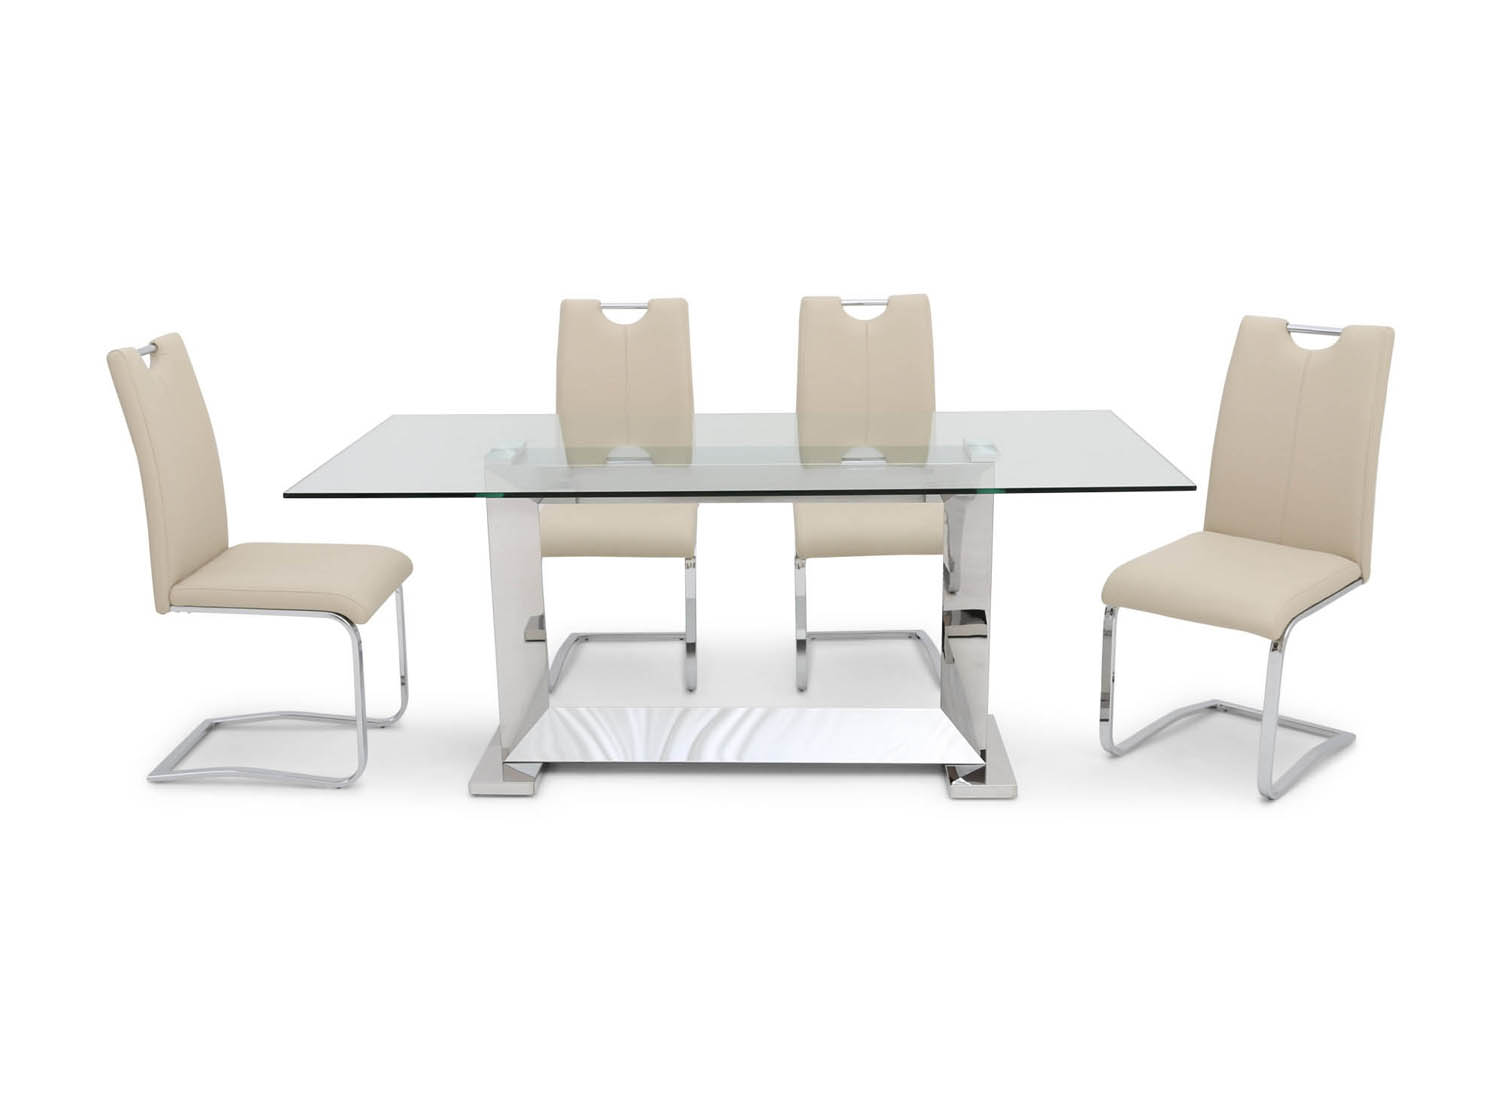 https://www.firstfurniture.co.uk/pub/media/catalog/product/d/o/donatella_dining_table_gabi_chairs_cream_1.jpg